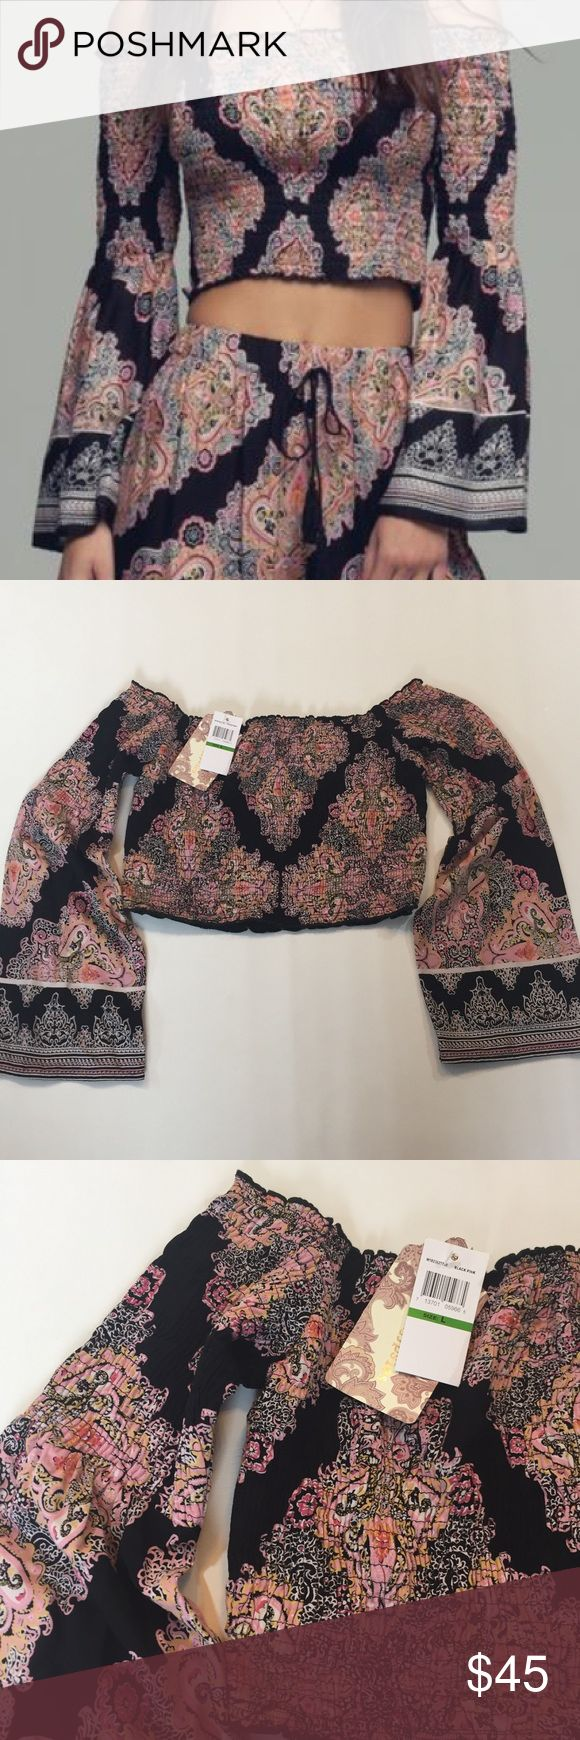 NWT Band of Gypsies cropped off the Shoulder top L NWT Band of Gypsies cropped top L Band of Gypsies Tops Crop Tops